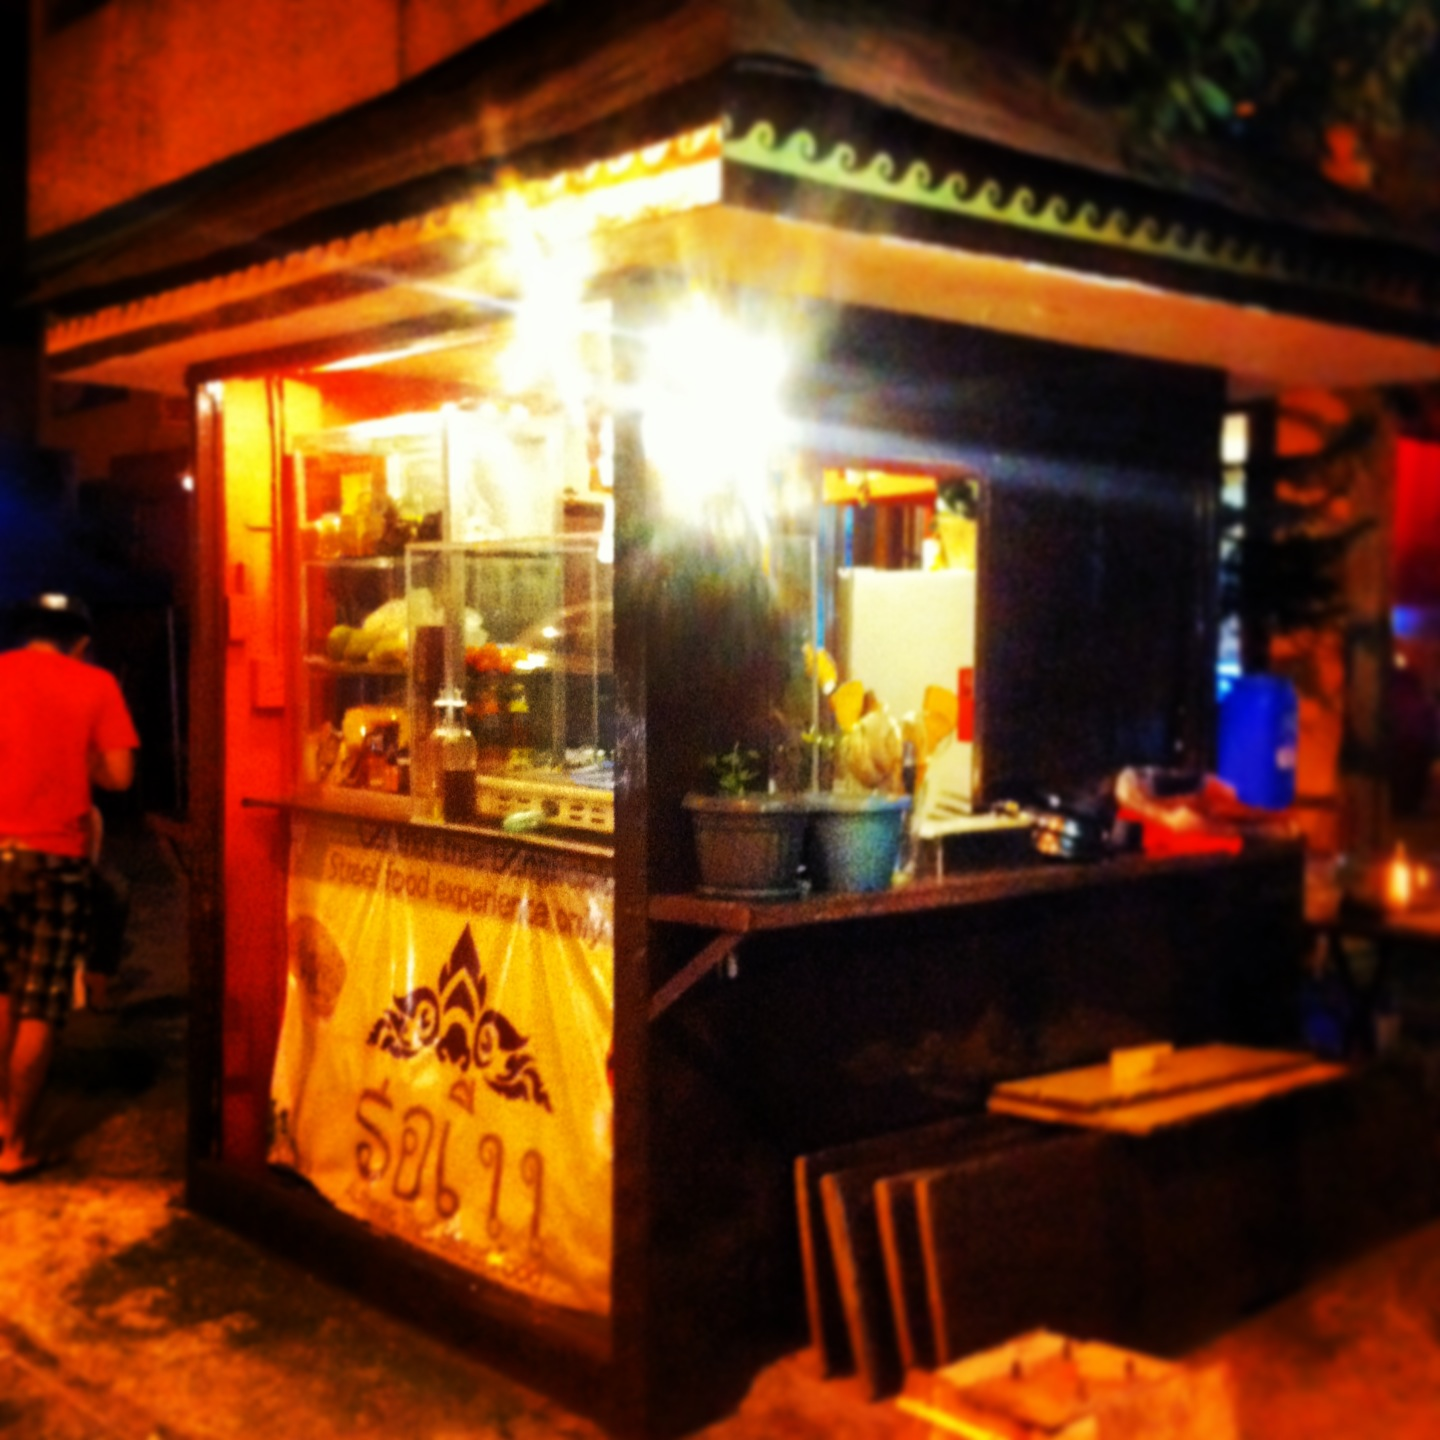 Soi11 bangkok street food in makati for Fast food places open on easter sunday